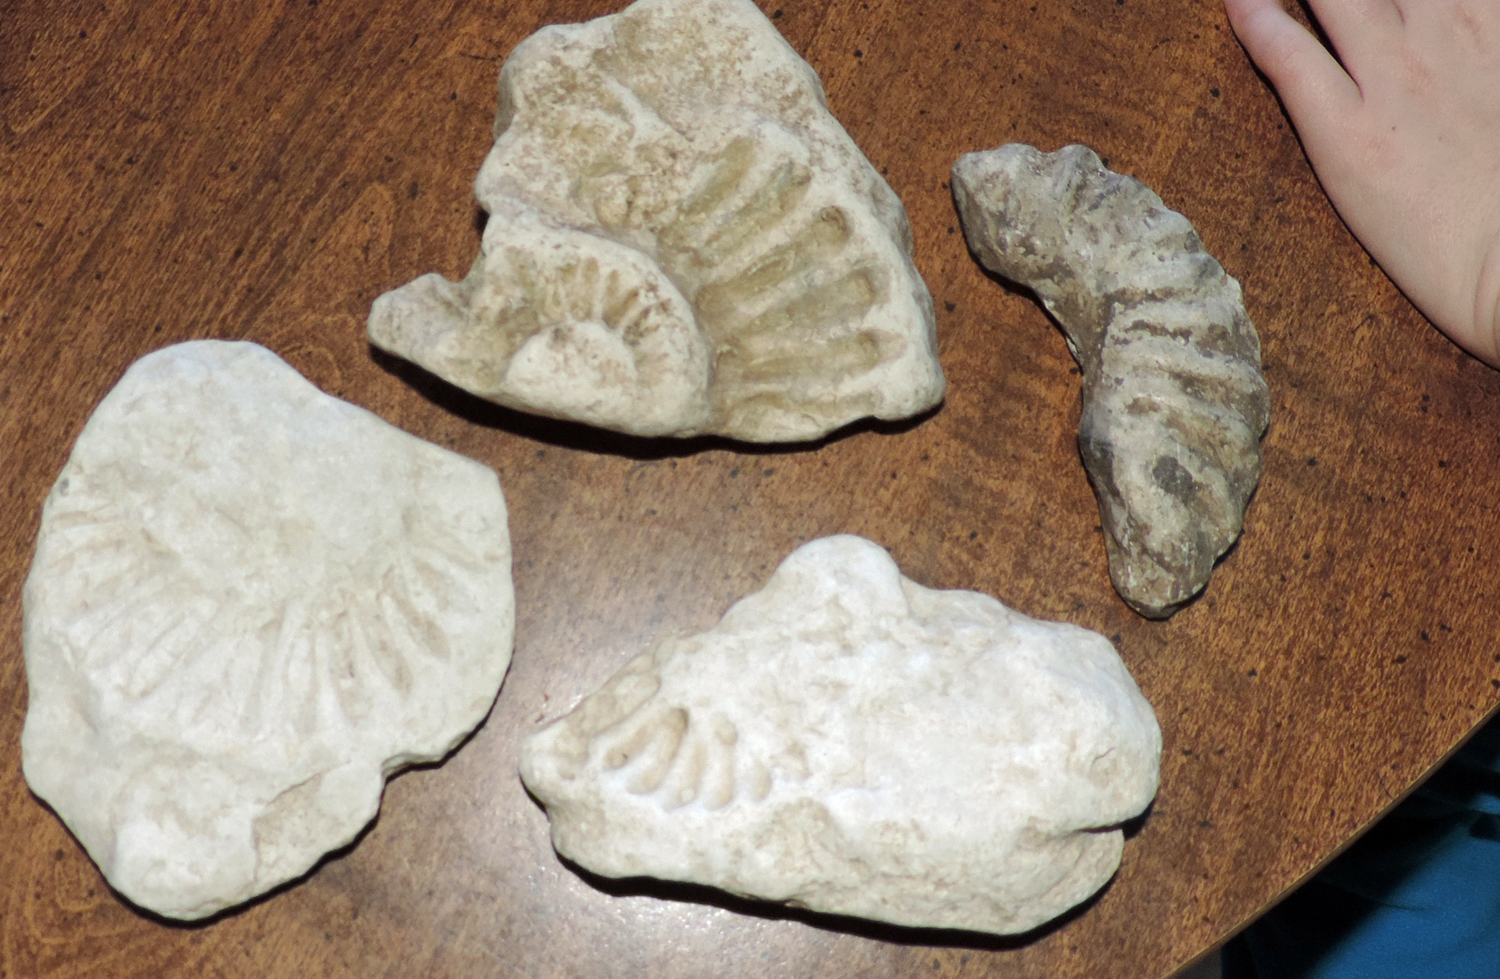 Fossils and Shells